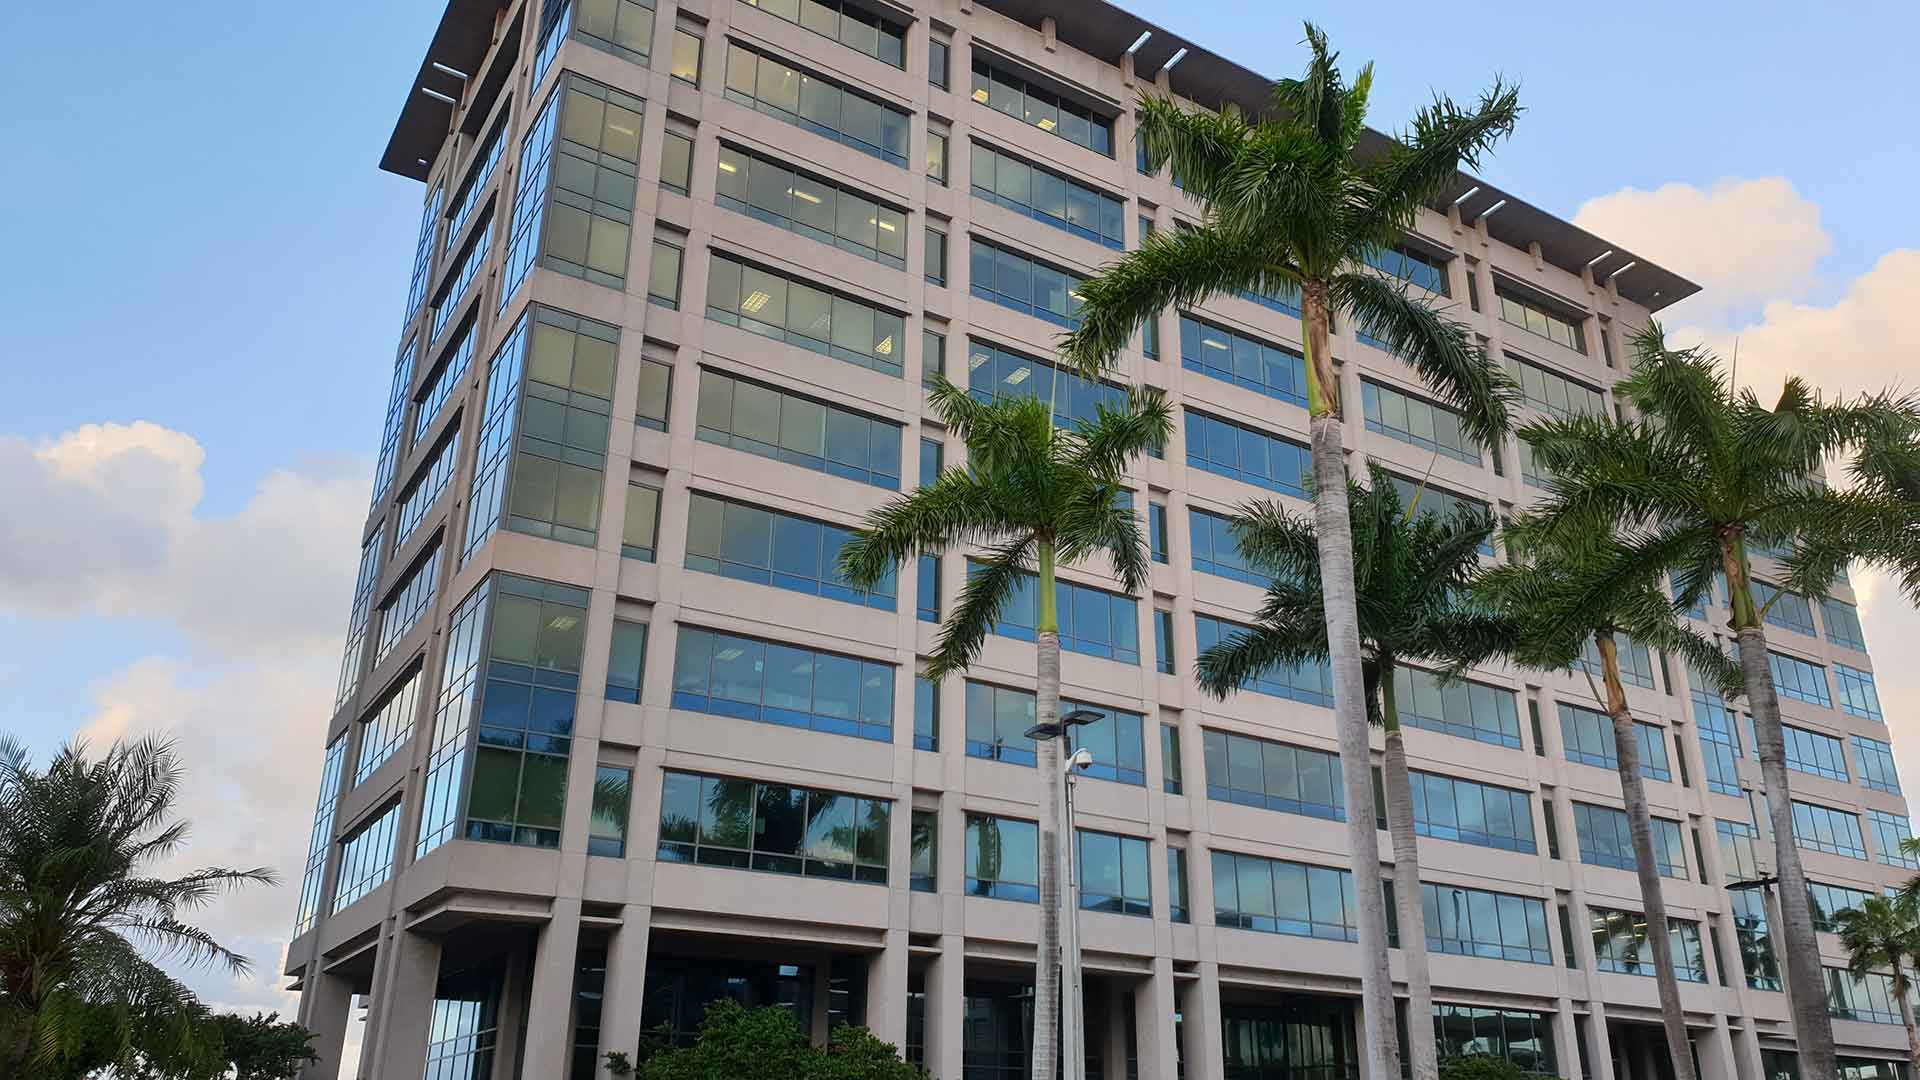 iata hq miami20190219_174736